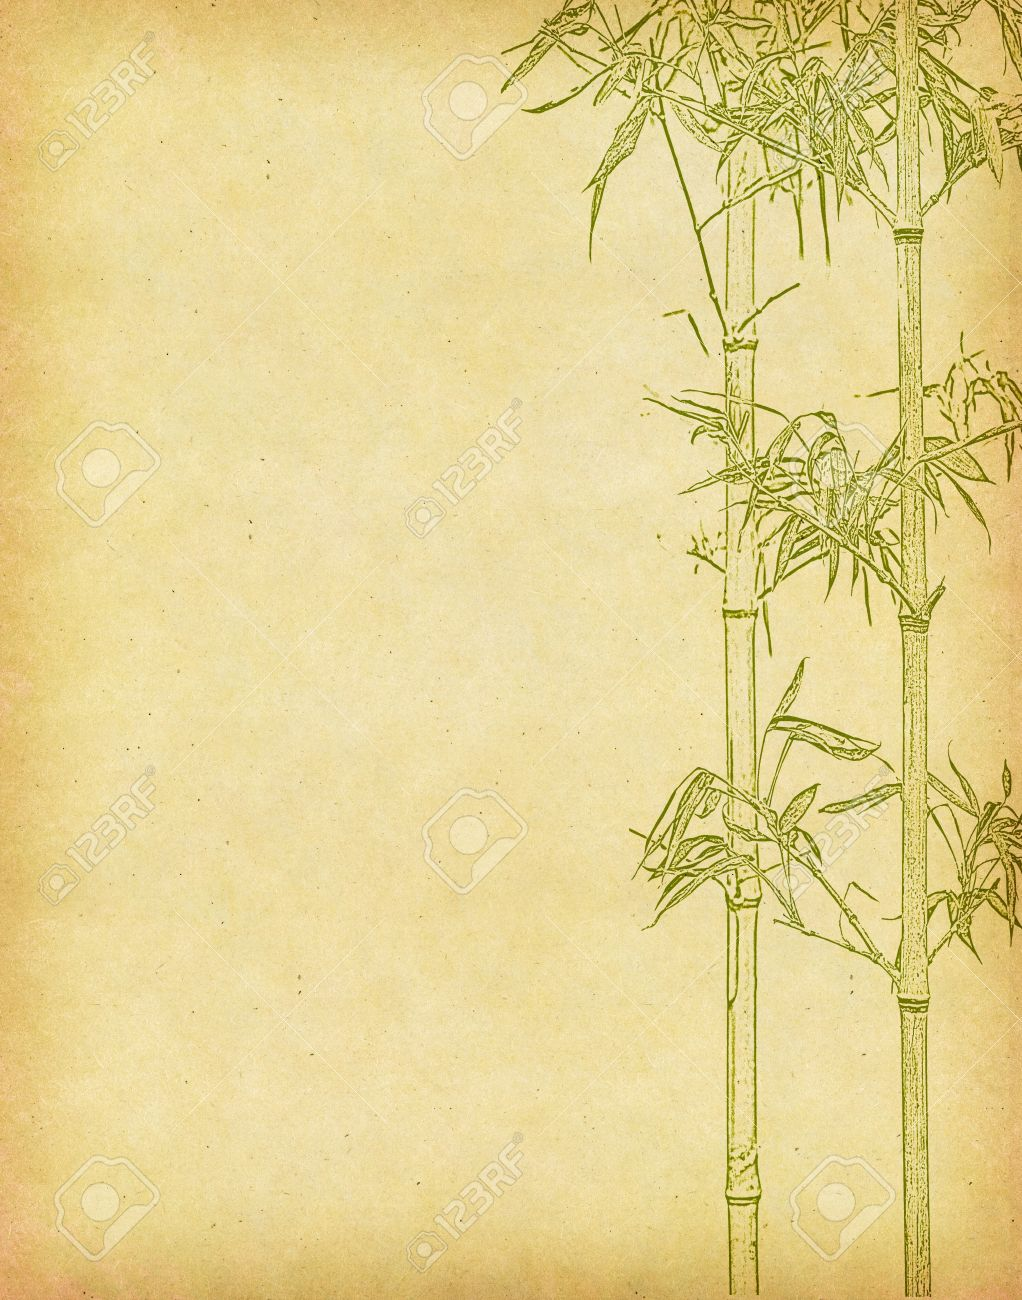 Design Of Chinese Bamboo Trees With Texture Of Handmade Paper Stock